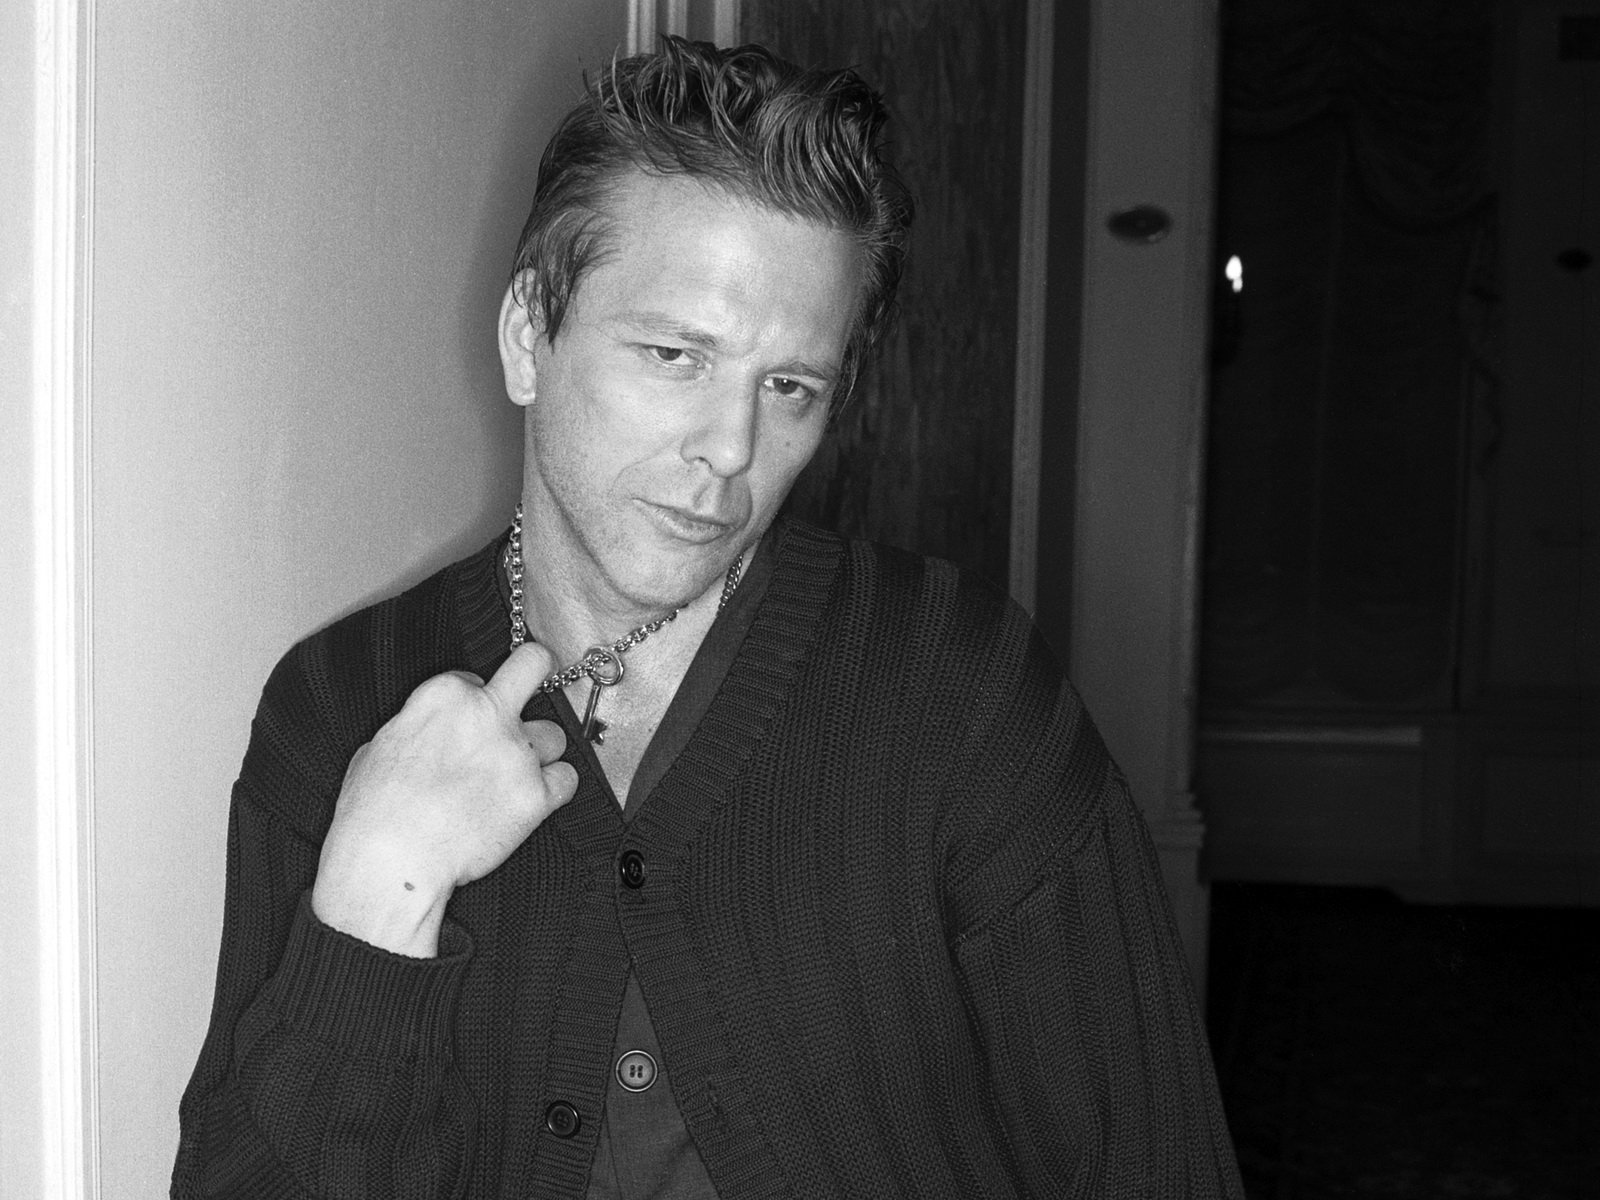 Mickey-Rourke-Net-Worth.jpg